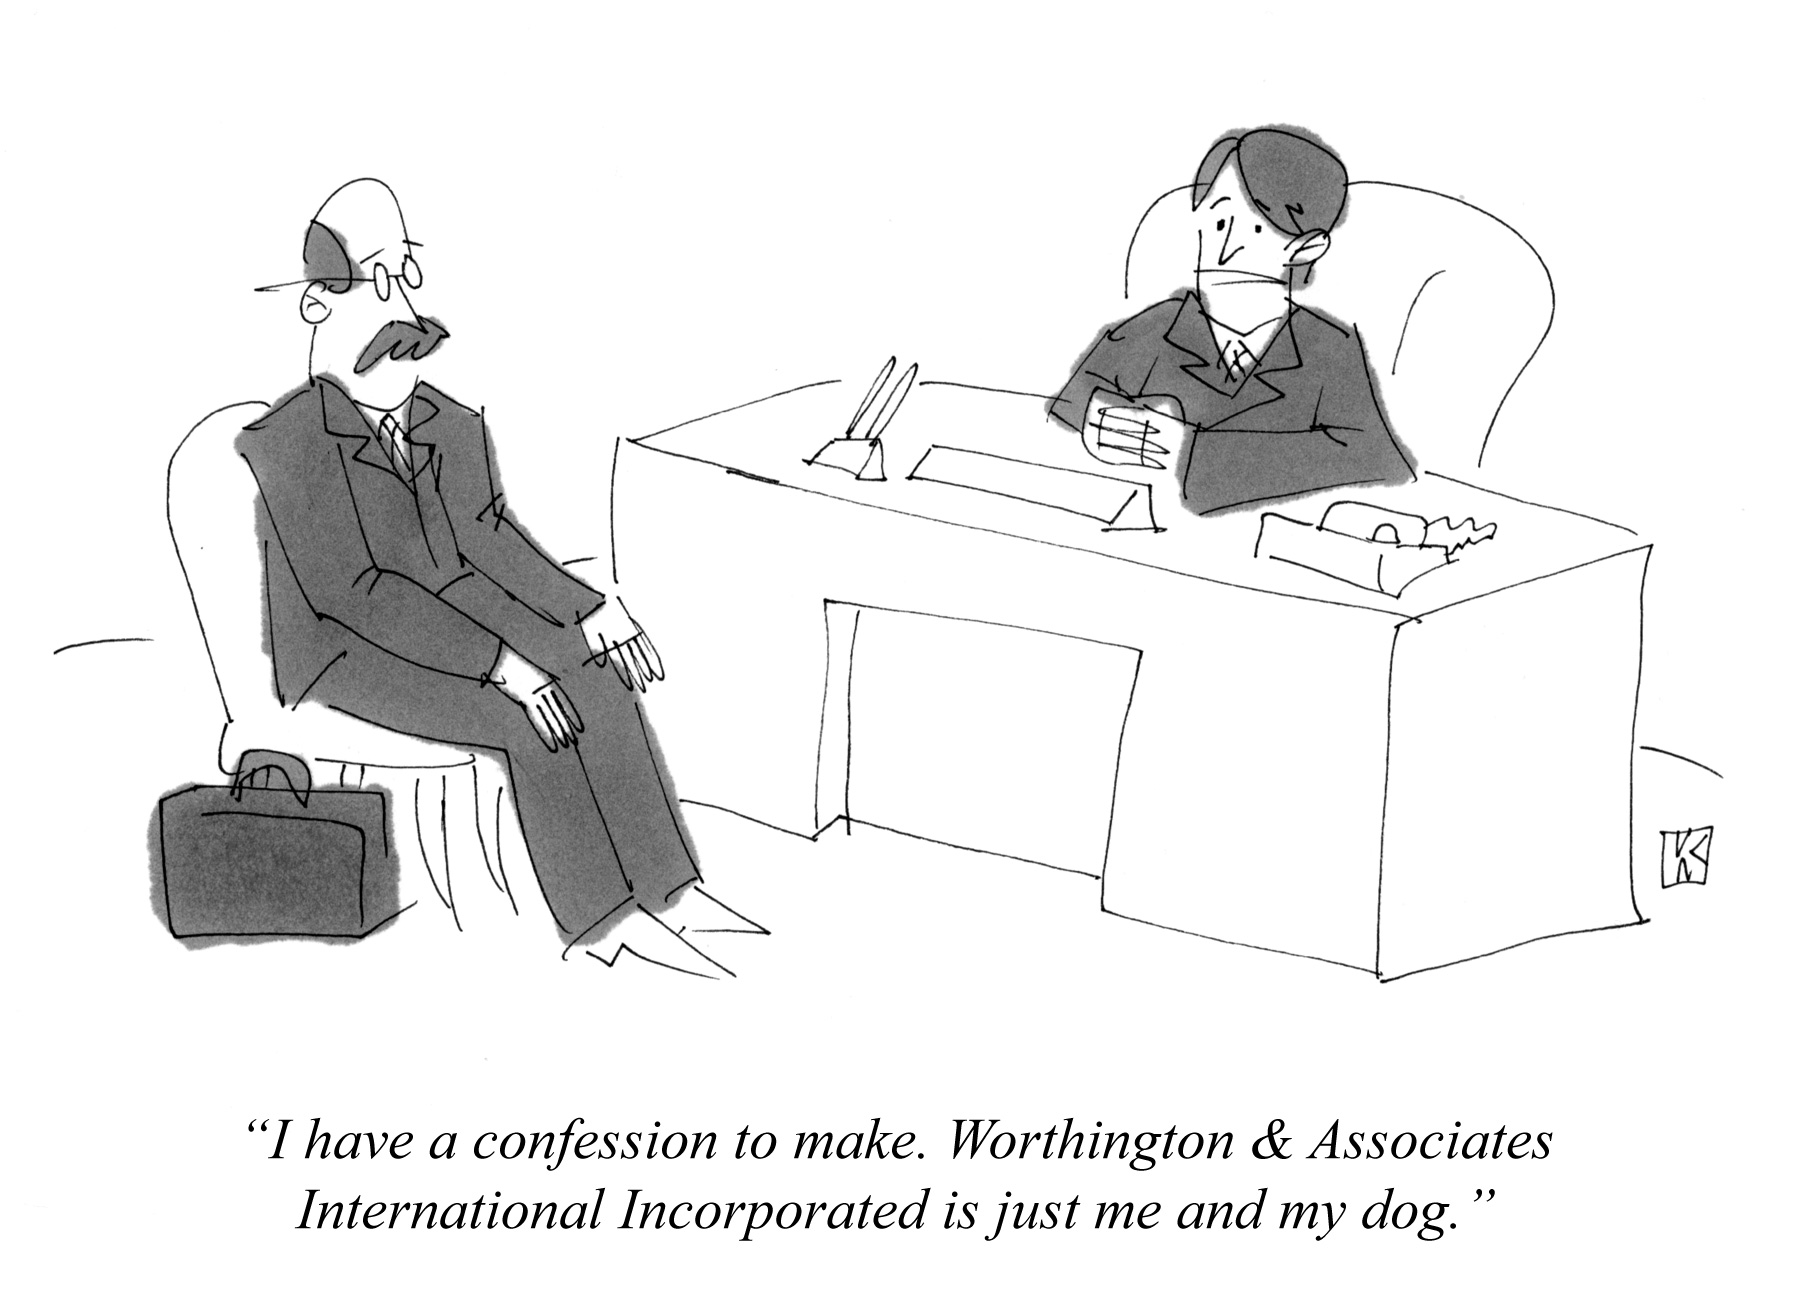 I have a confession to make. Worthington & Associates International Incorporated is just me and my dog.